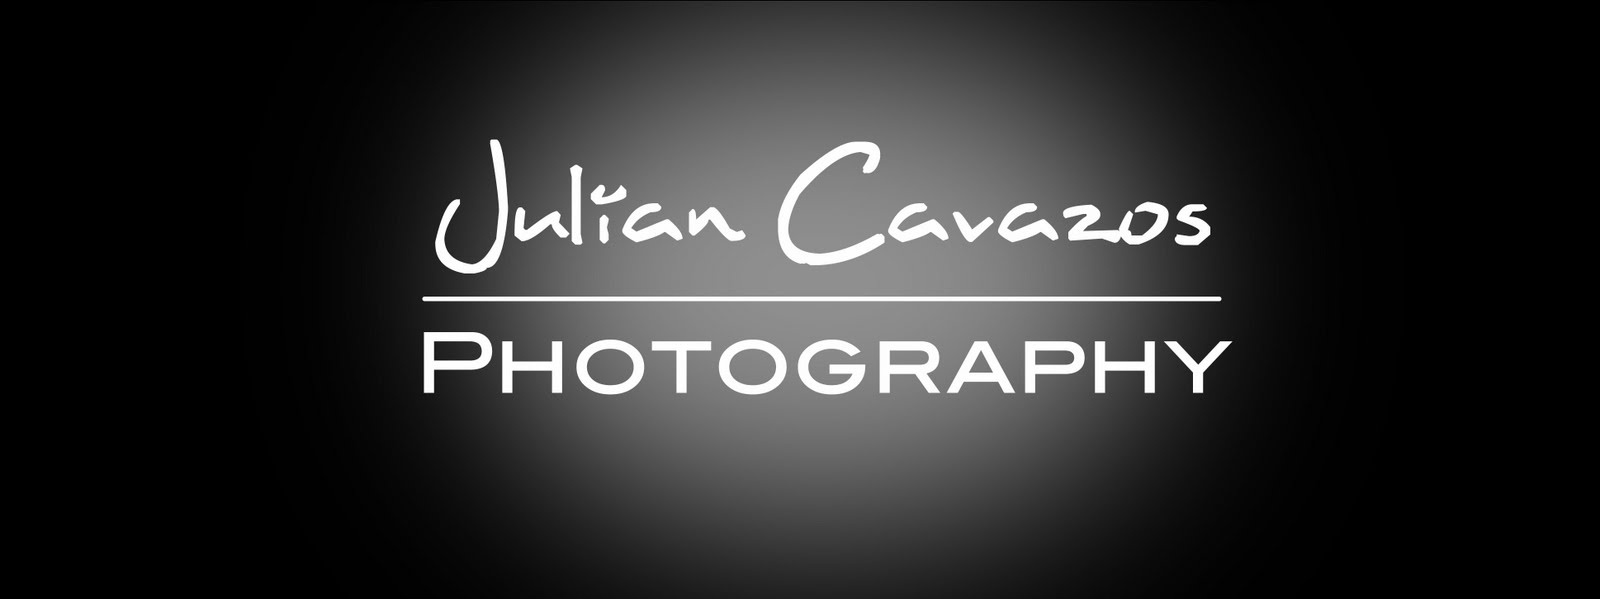 Julian Cavazos Photography